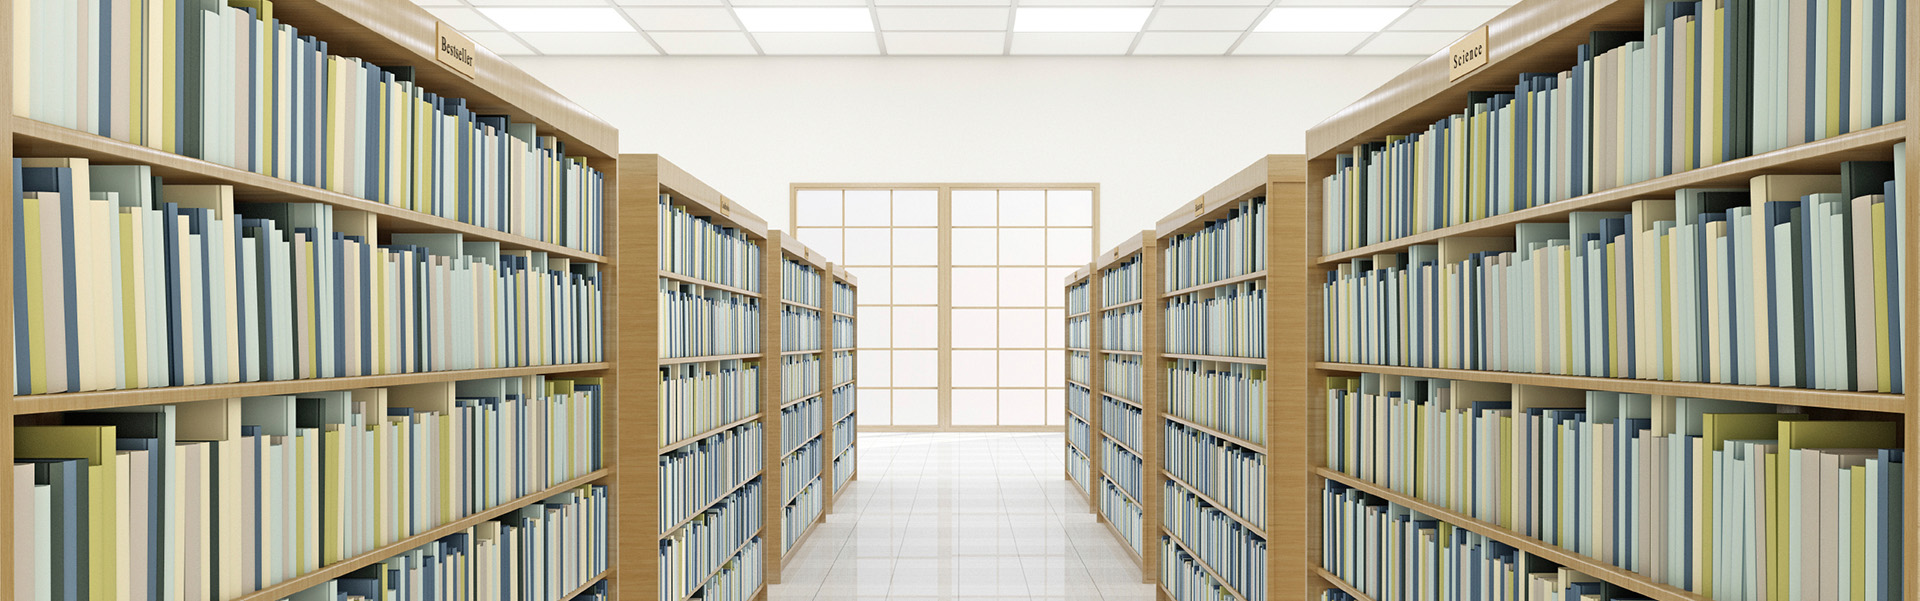 library-shelves-1920x600